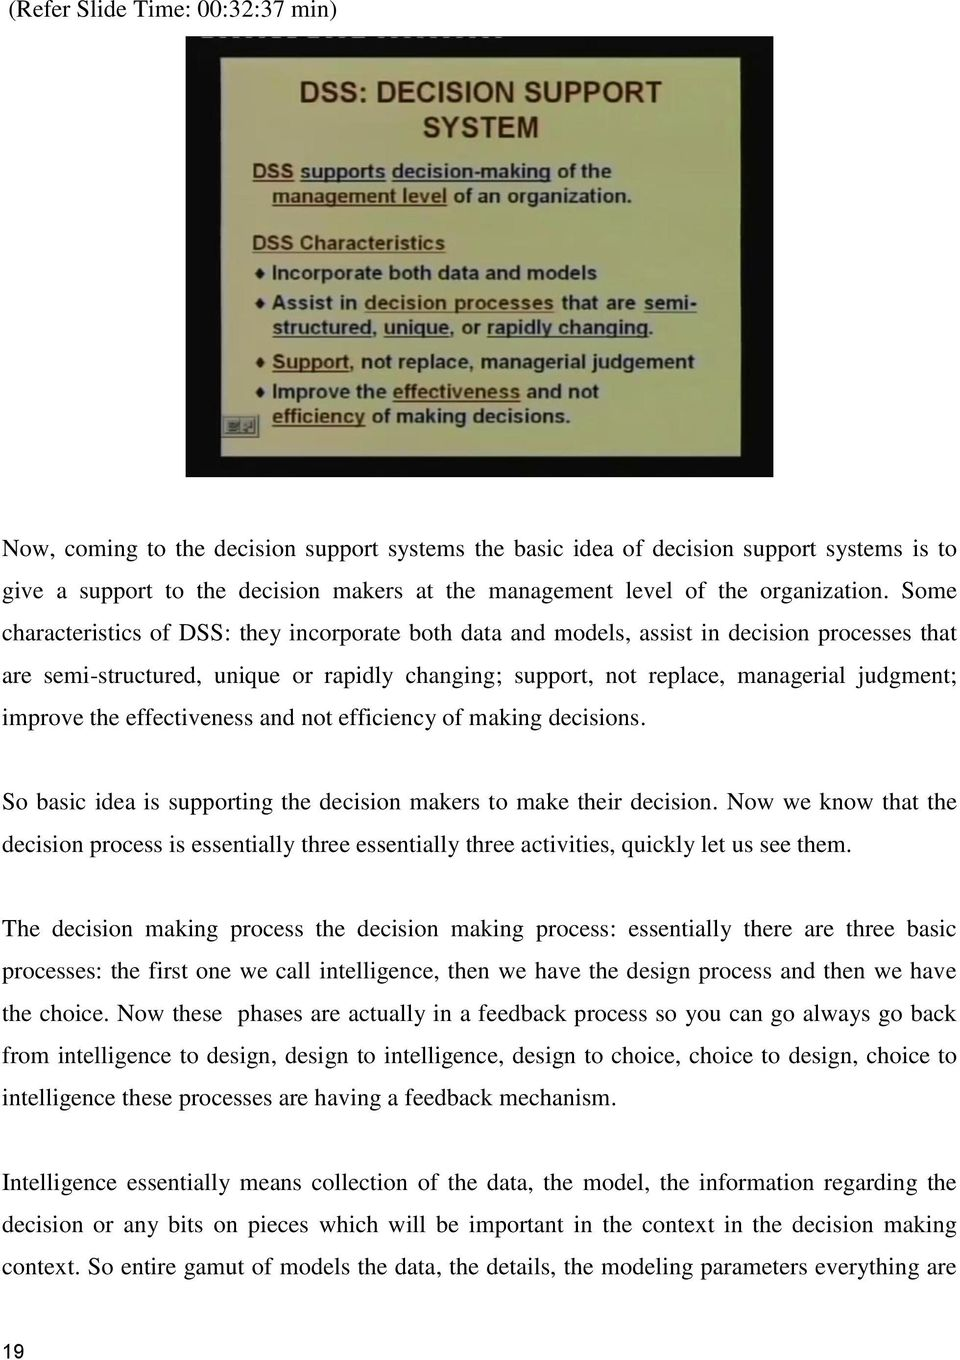 Some characteristics of DSS: they incorporate both data and models, assist in decision processes that are semi-structured, unique or rapidly changing; support, not replace, managerial judgment;